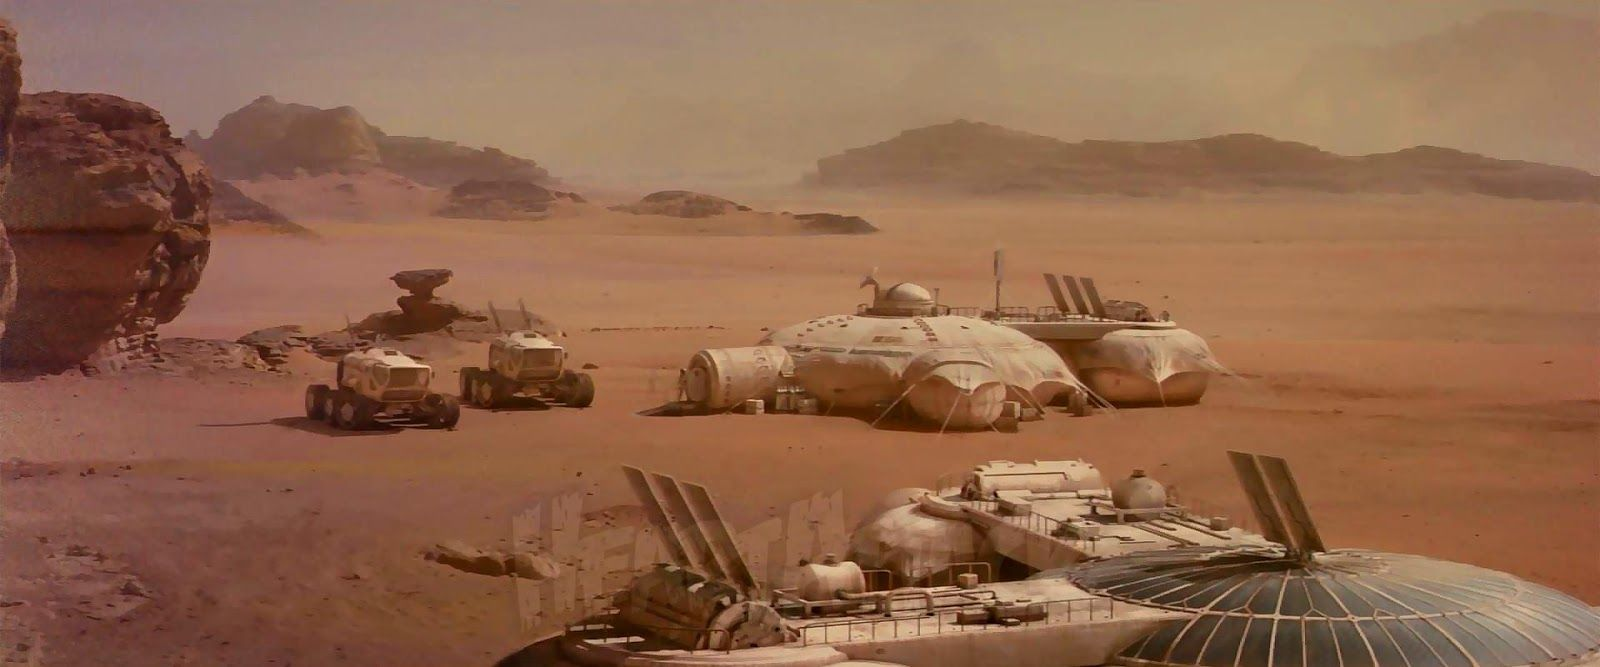 mission to mars concept art - photo #15